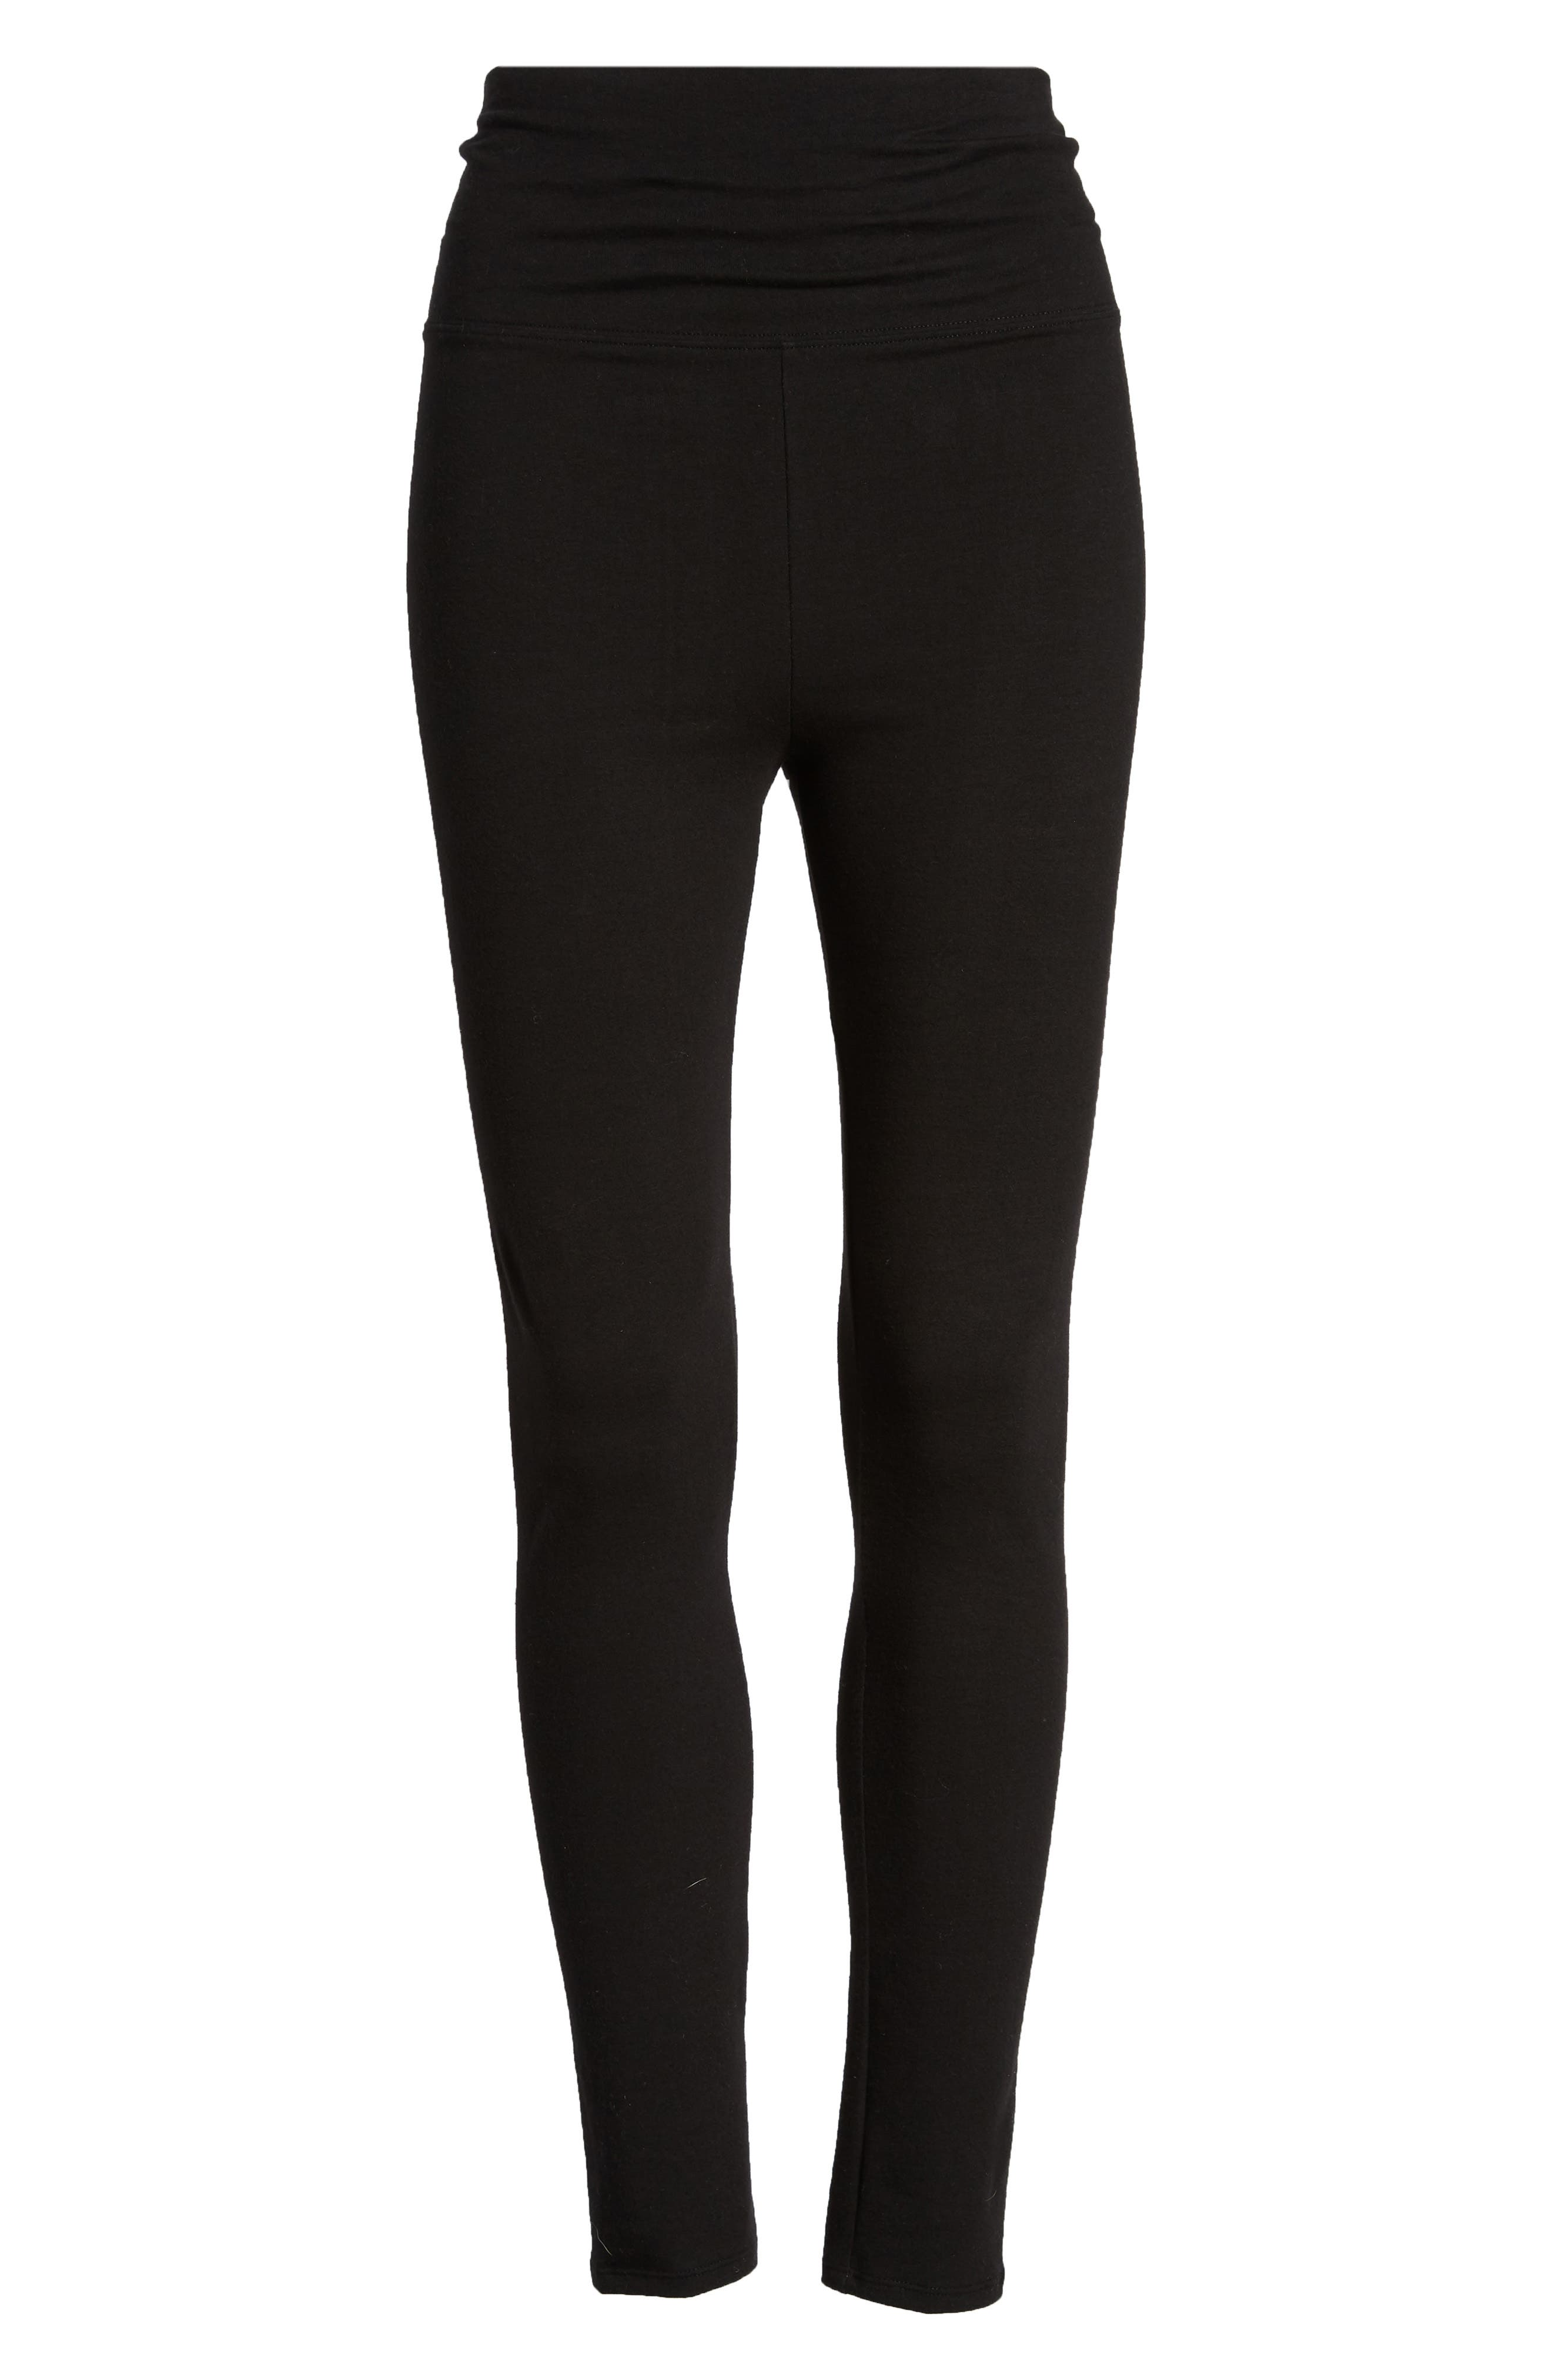 Go-To High Waist Leggings,                             Alternate thumbnail 6, color,                             BLACK